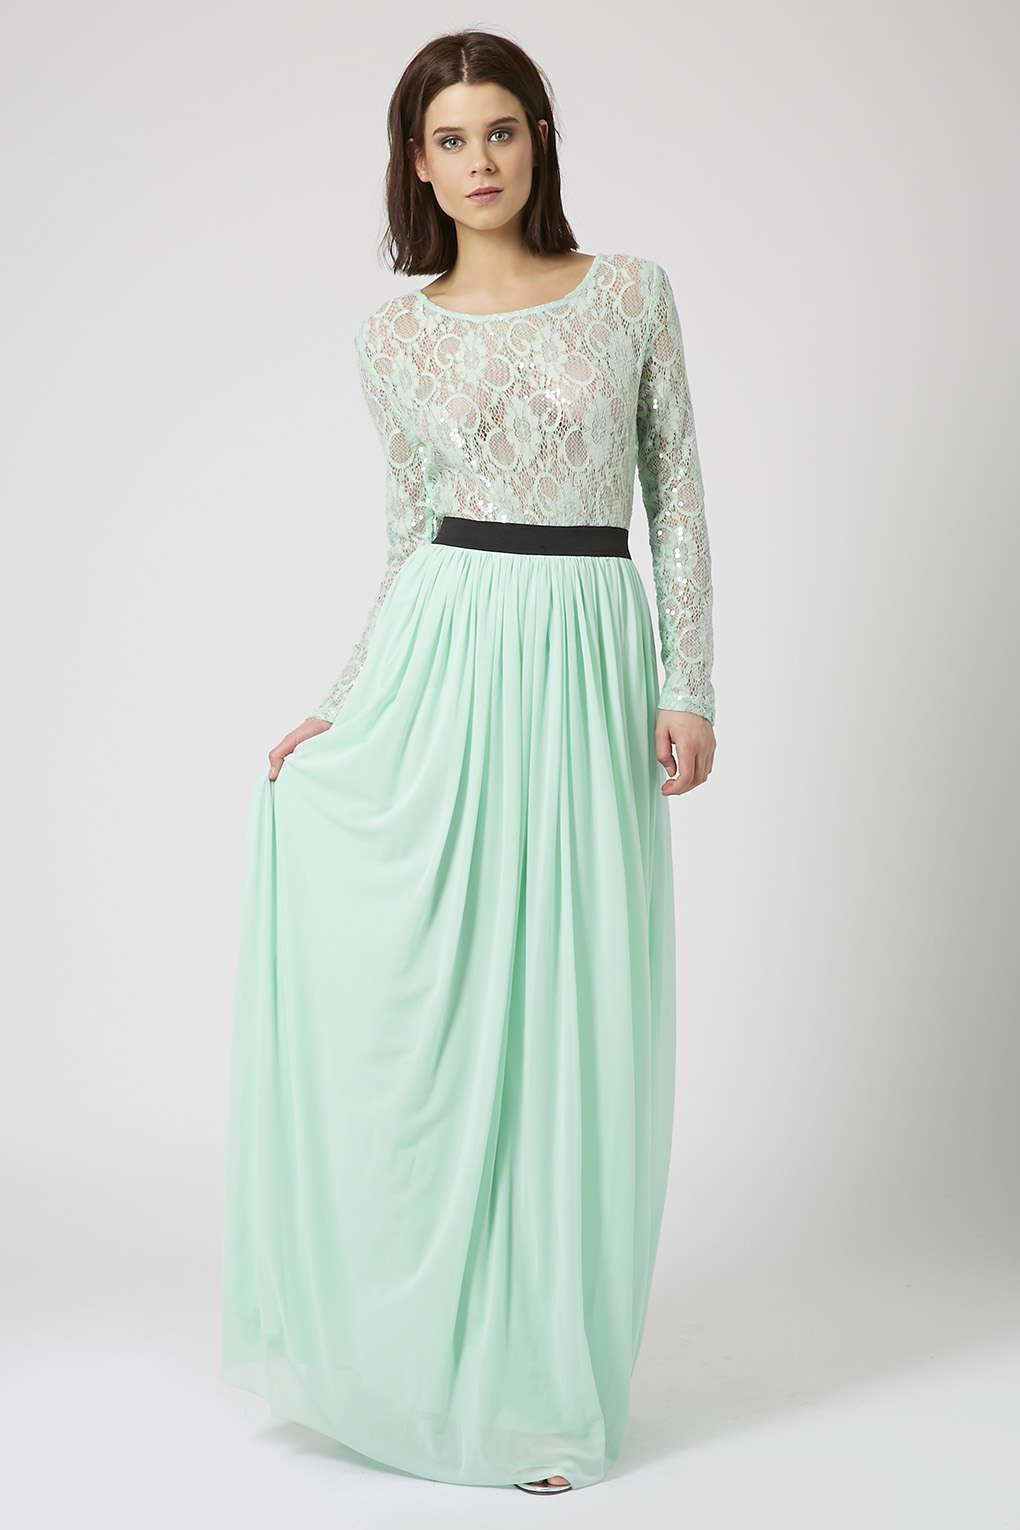 Long Sleeve Lace Maxi Dress by Rare - Dresses - Clothing | Mint ...